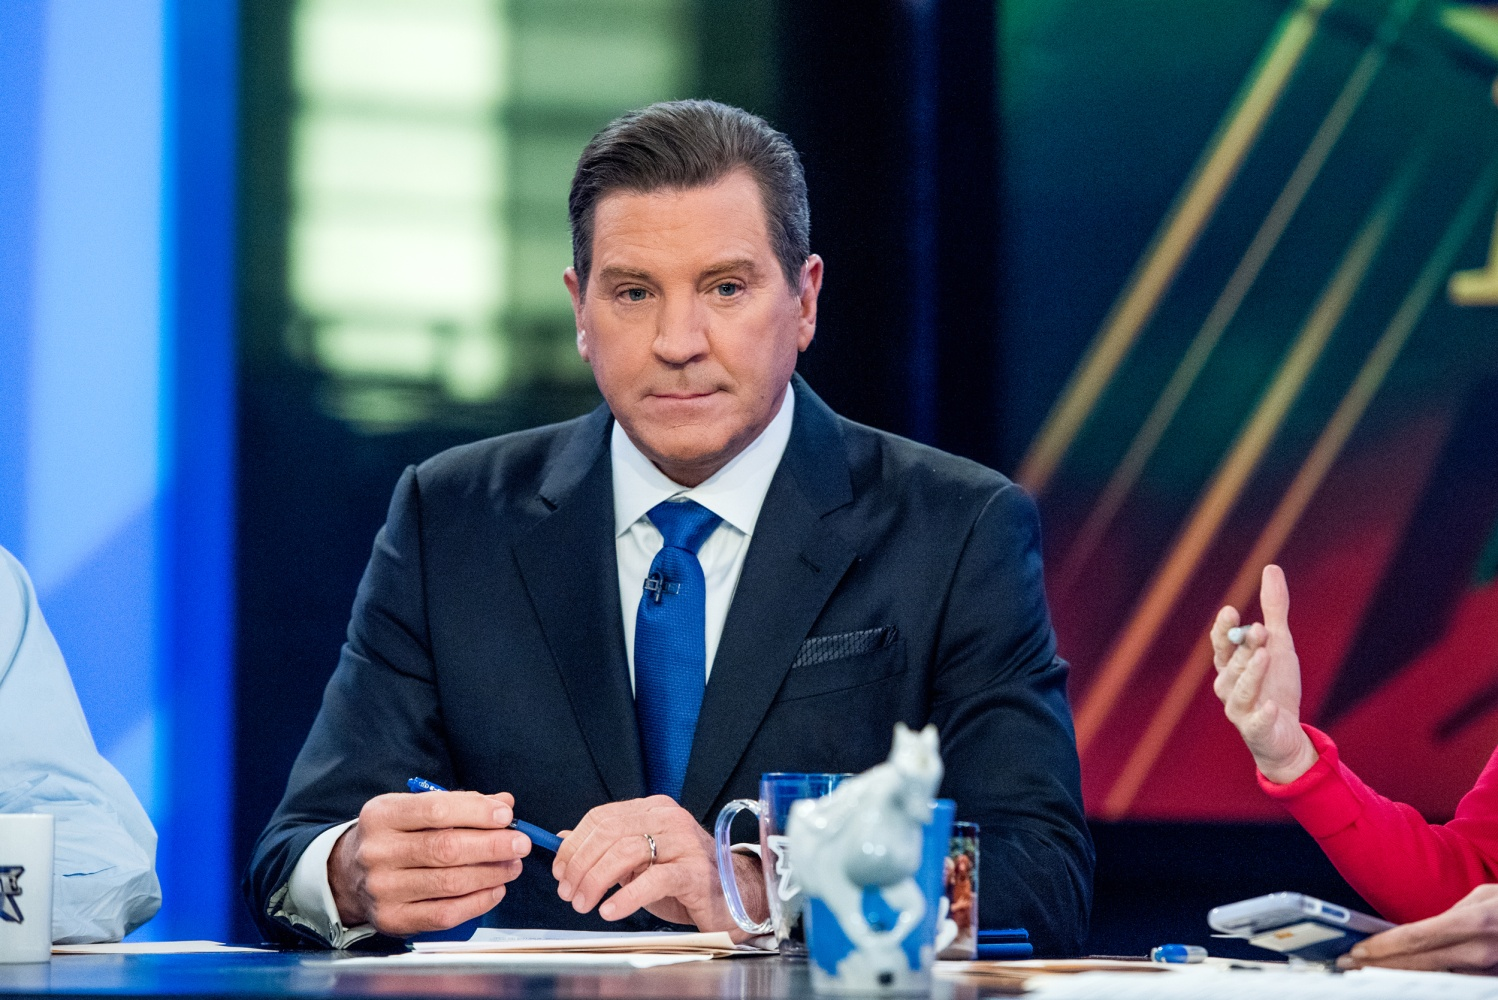 Eric Bolling Is Suspended While Fox News Investigates Lewd Photo Allegations